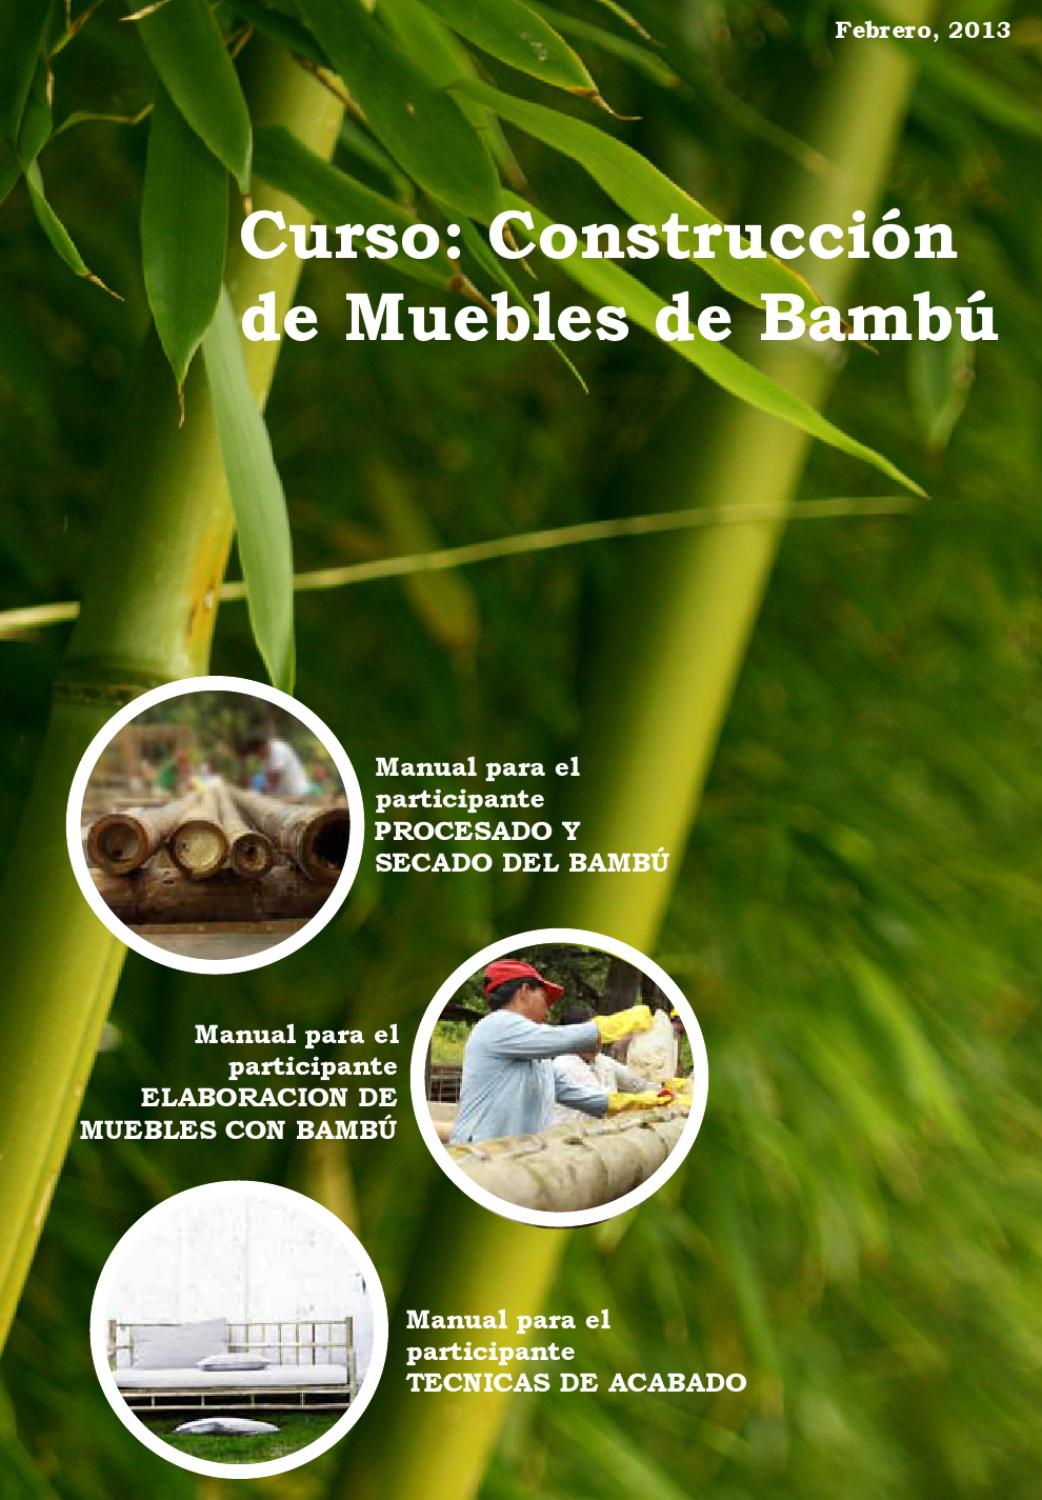 Manual de construcci n de muebles de bamb by omar caldera for Muebles de bambu y mimbre